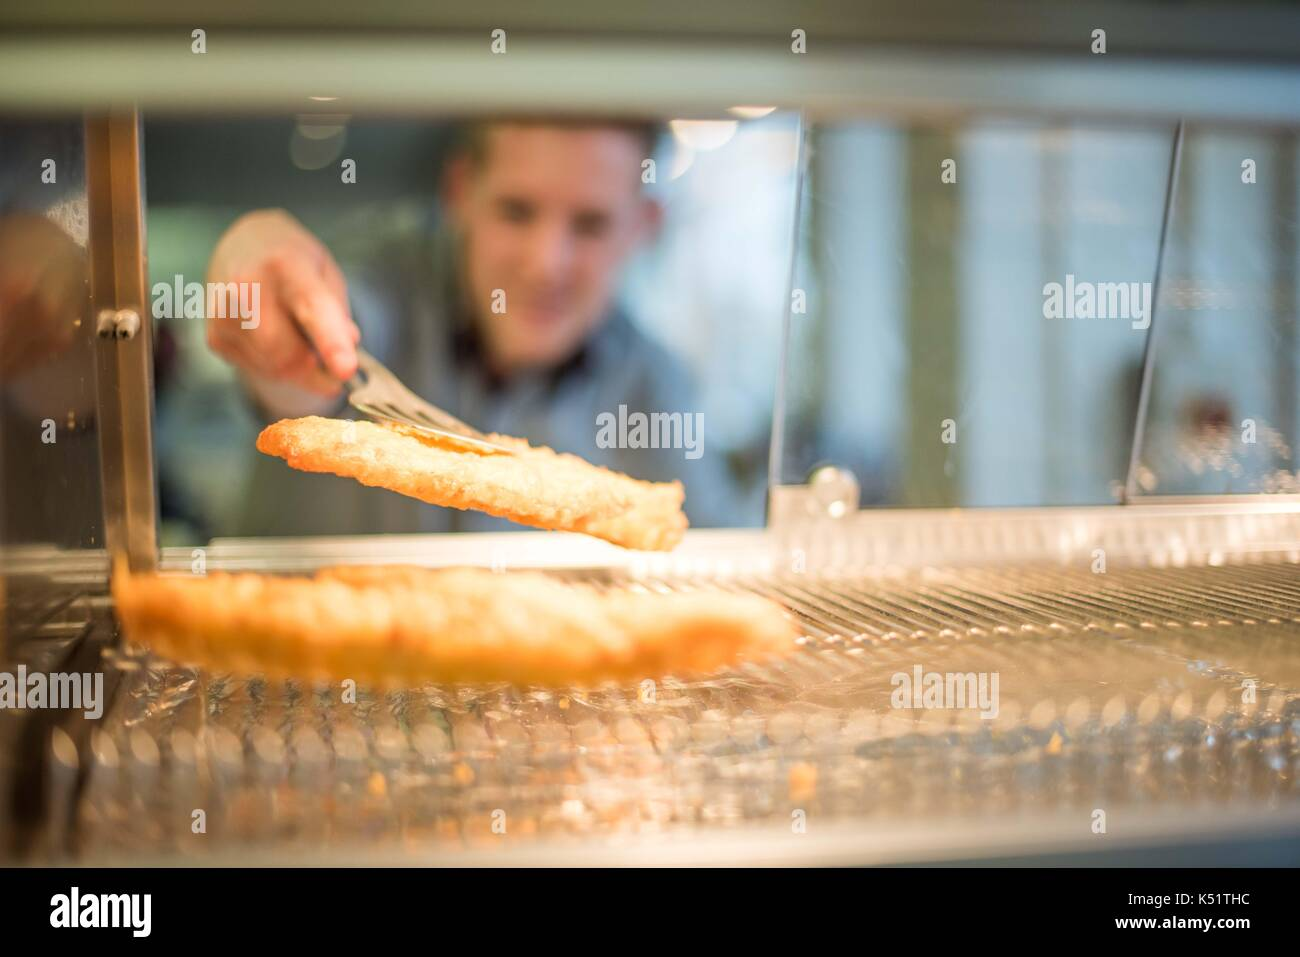 A Uk fast food take away with worker reaching for battered fish and sausage - Stock Image